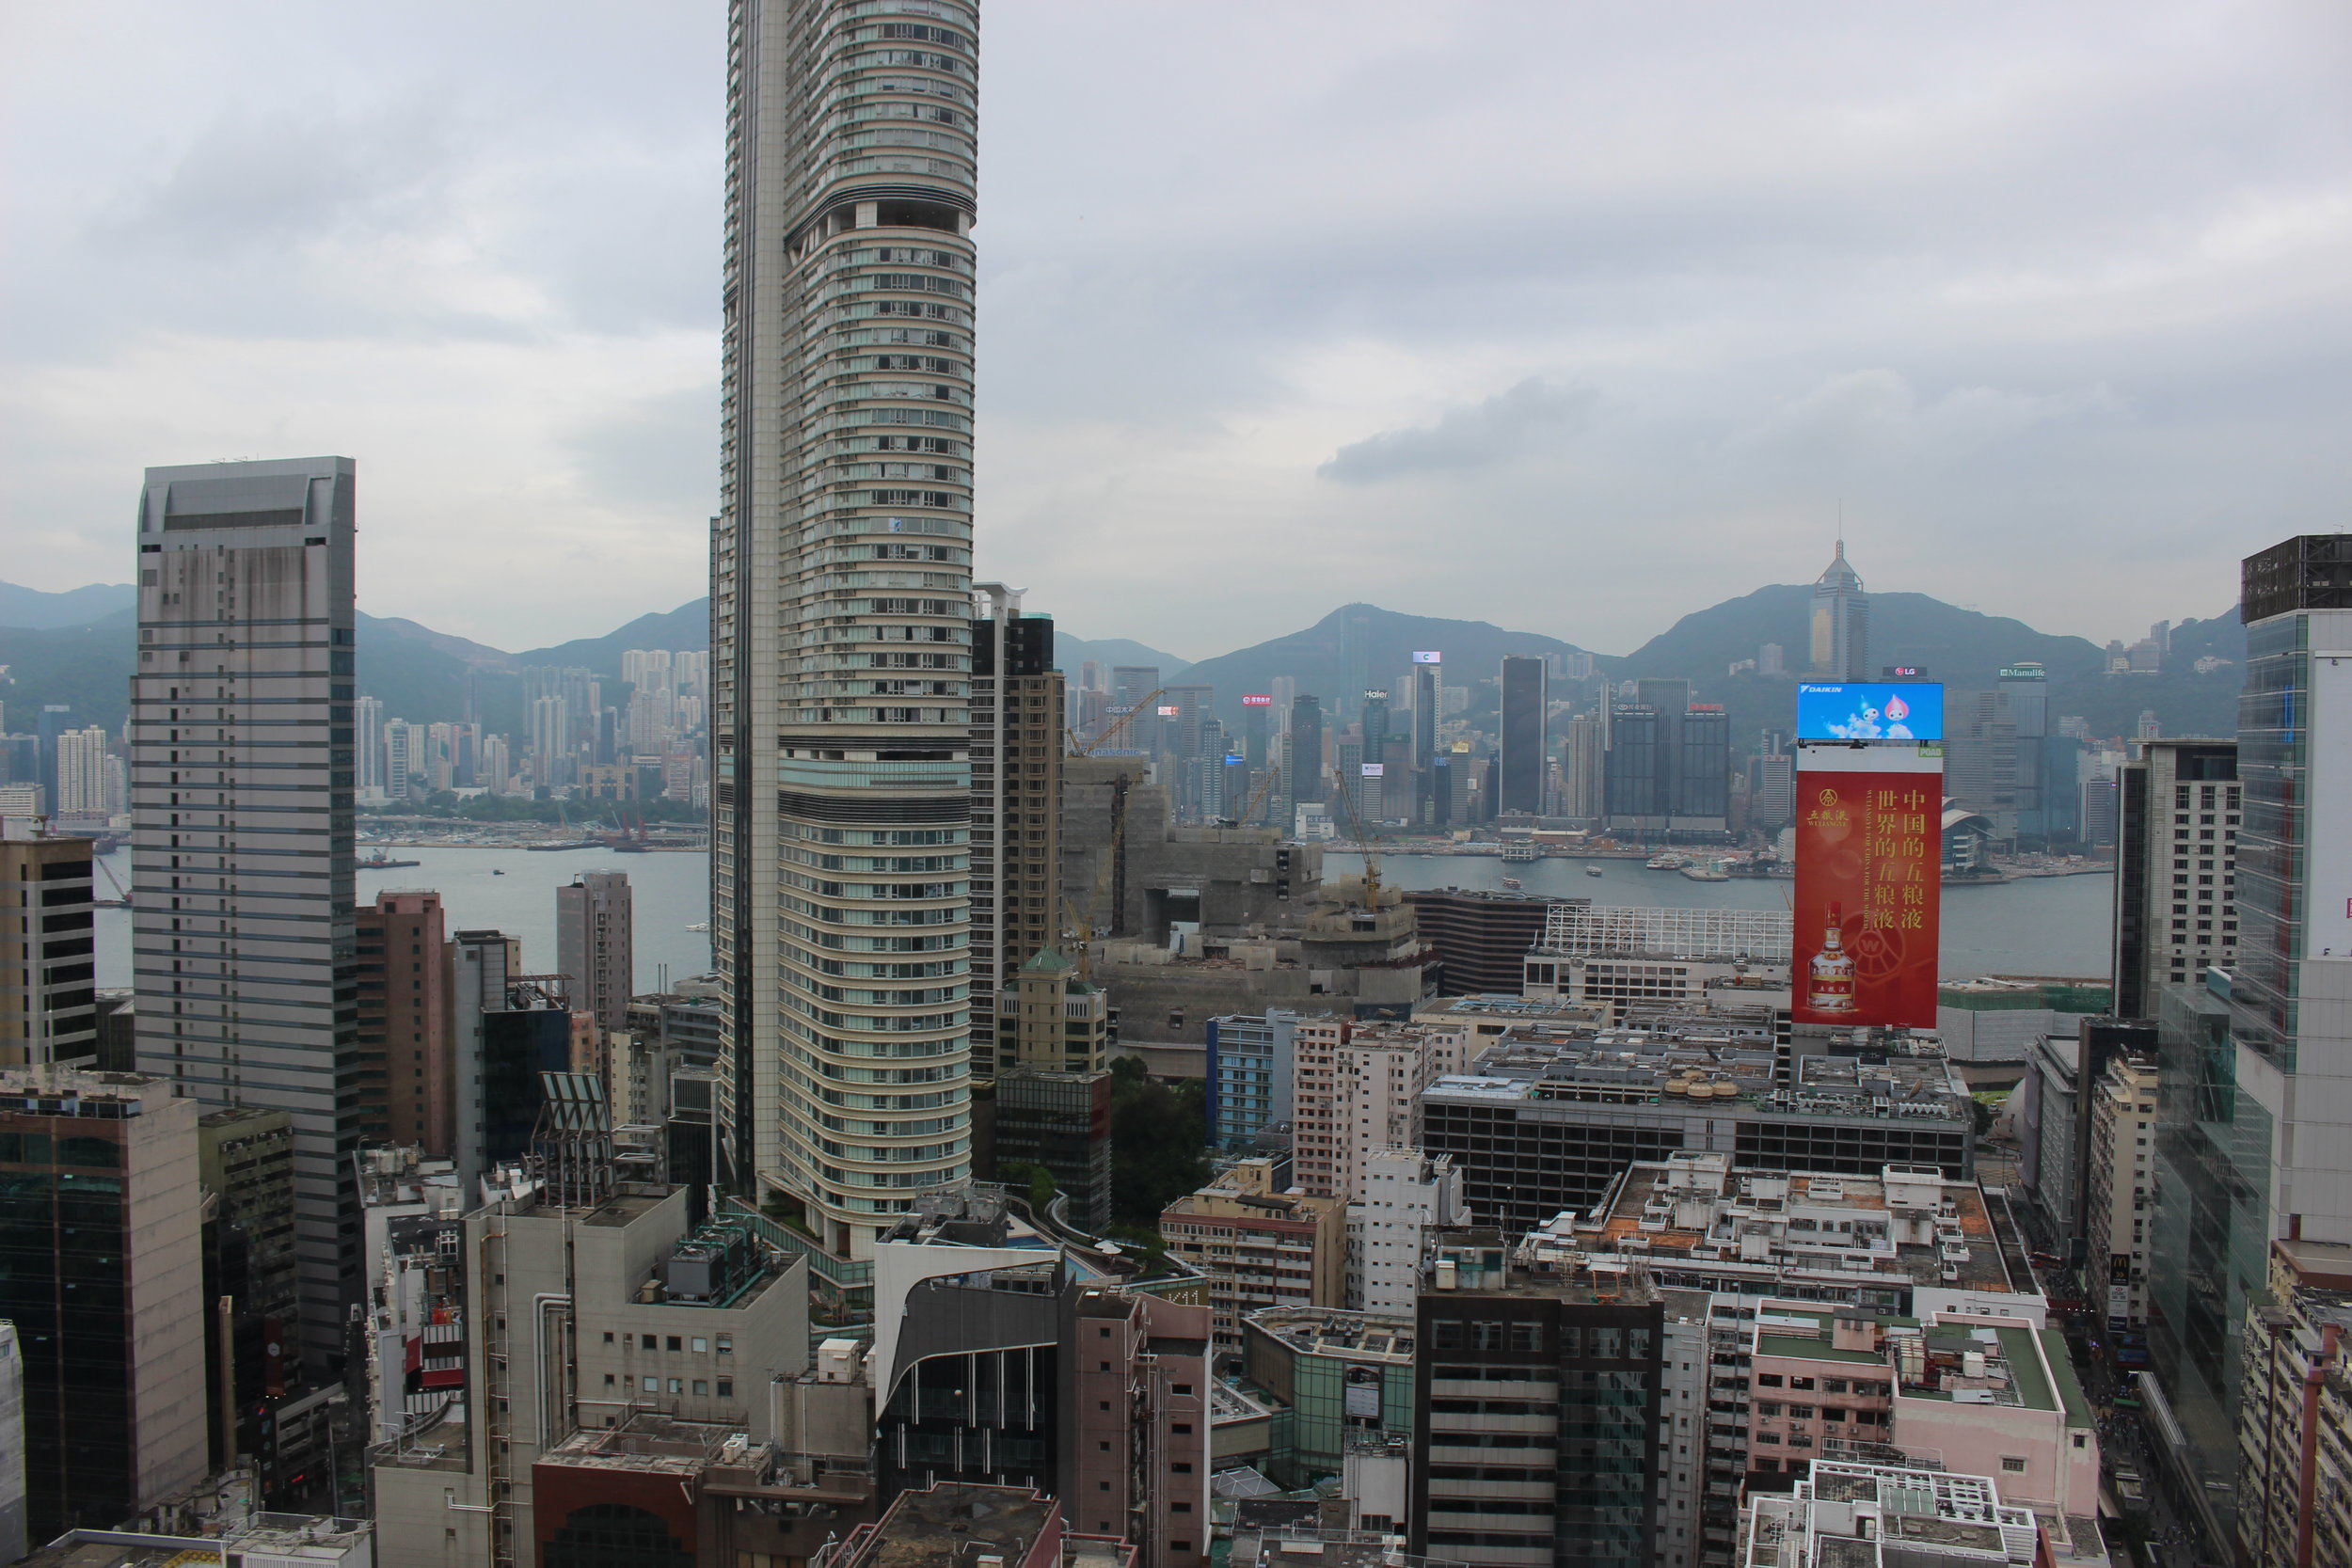 View of the downtown from a shopping mall